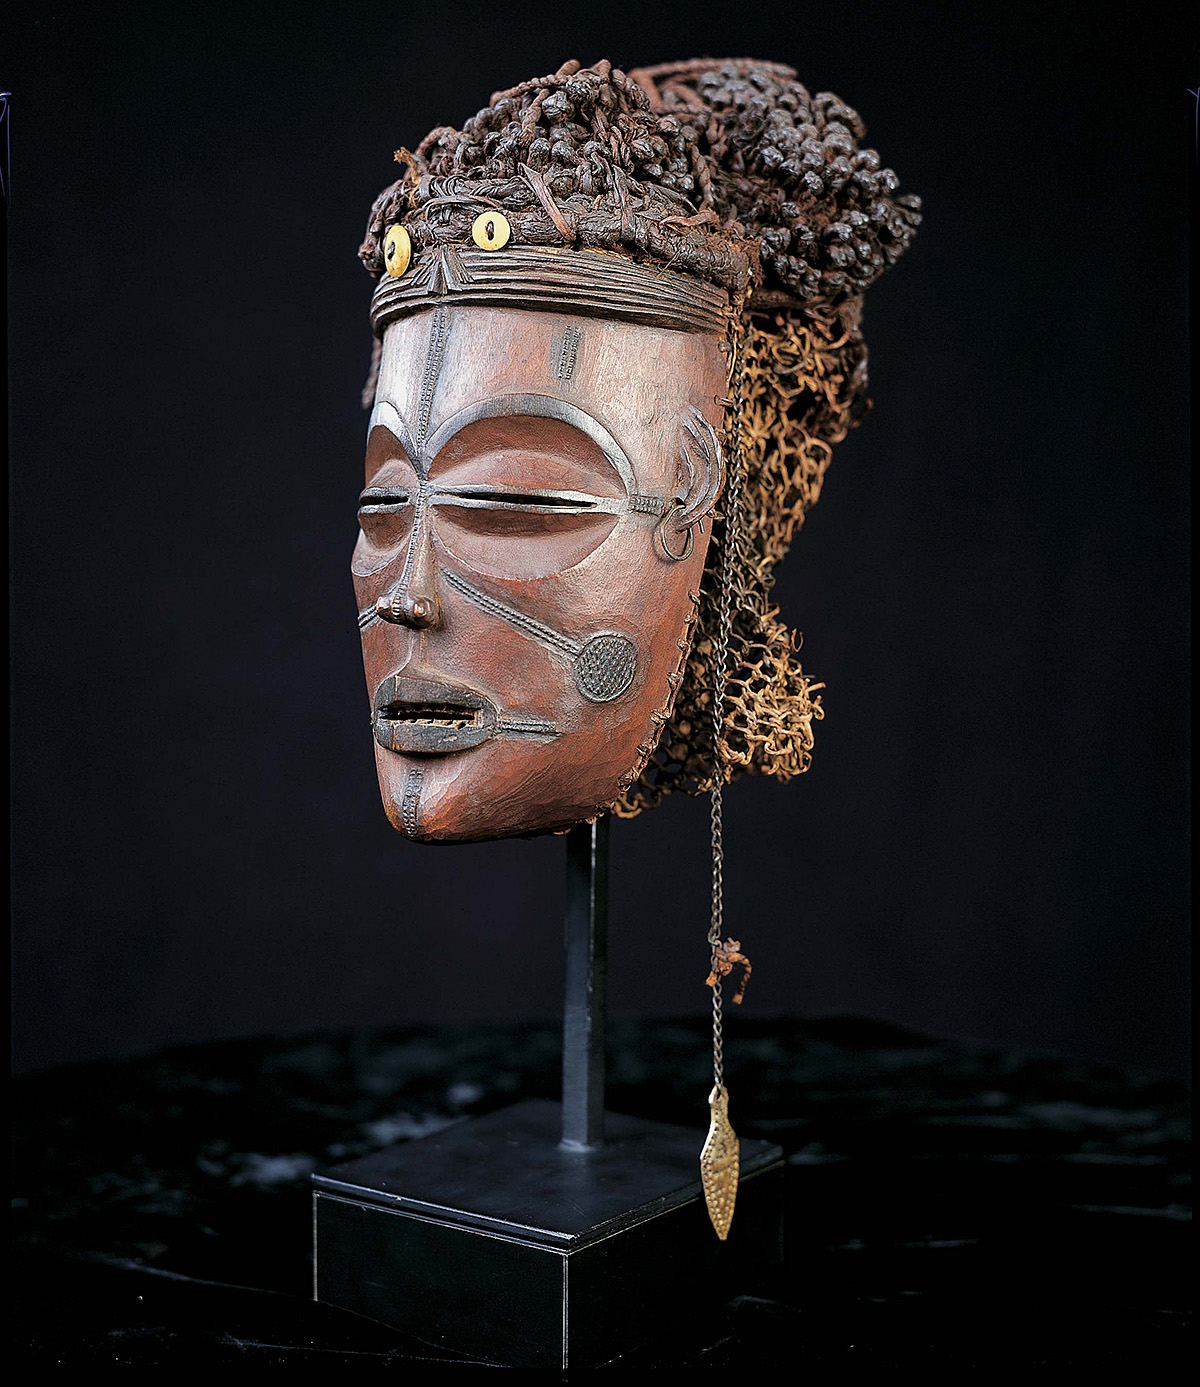 The image depicts the African Mwana Pwo mask featured in this Object of the Month presentation.